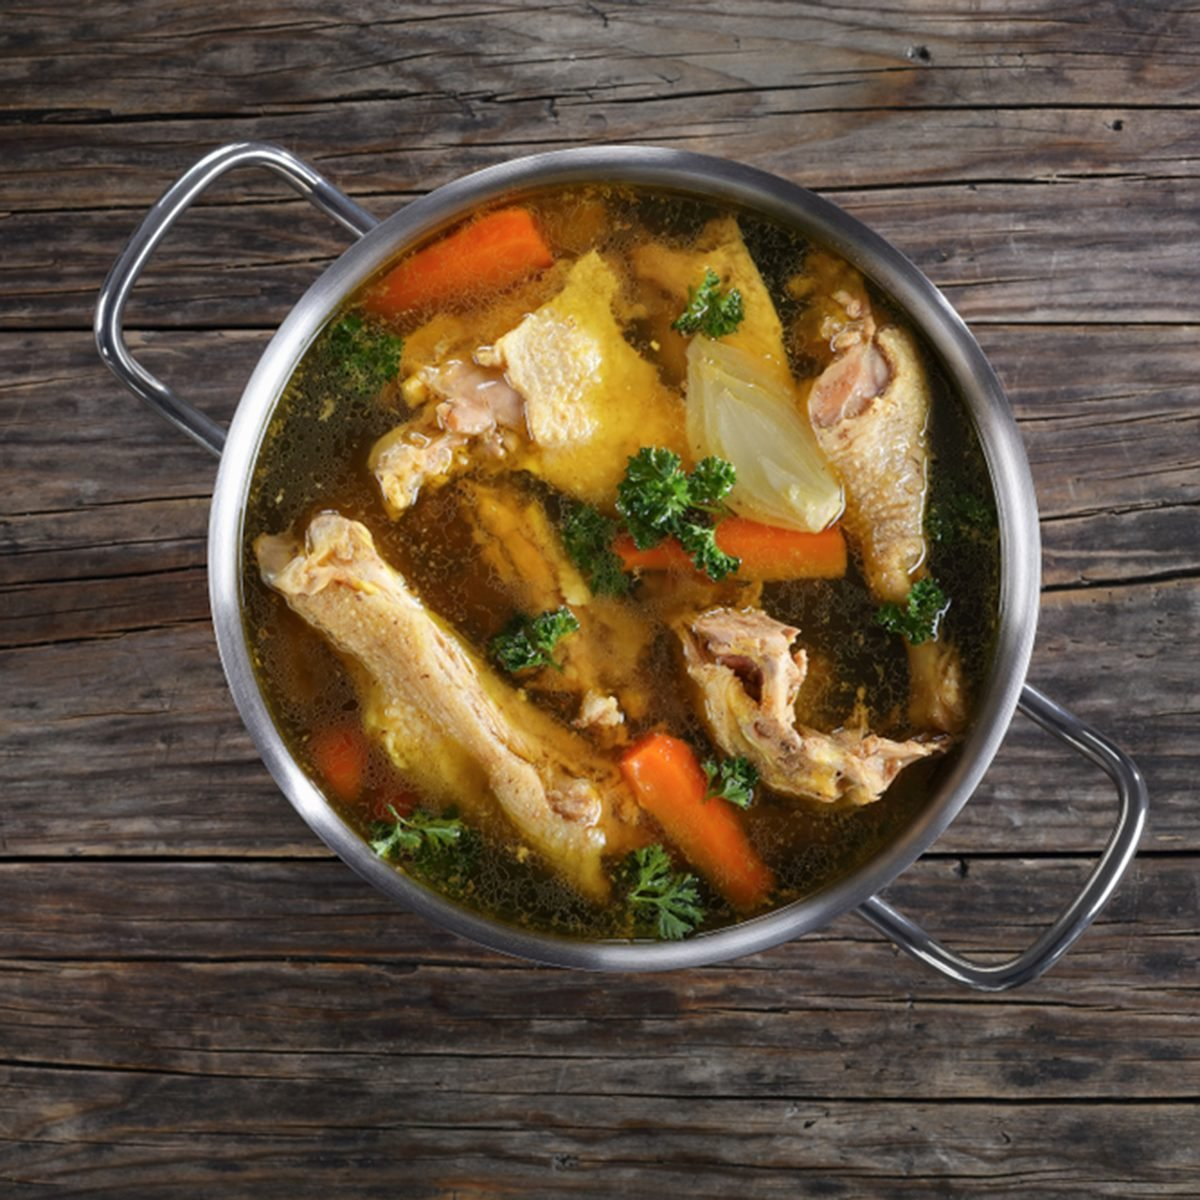 clear Chicken broth with pieces of rooster meat on bone and vegetables in a metal casserole on dark wooden table, view from above; Shutterstock ID 776860549